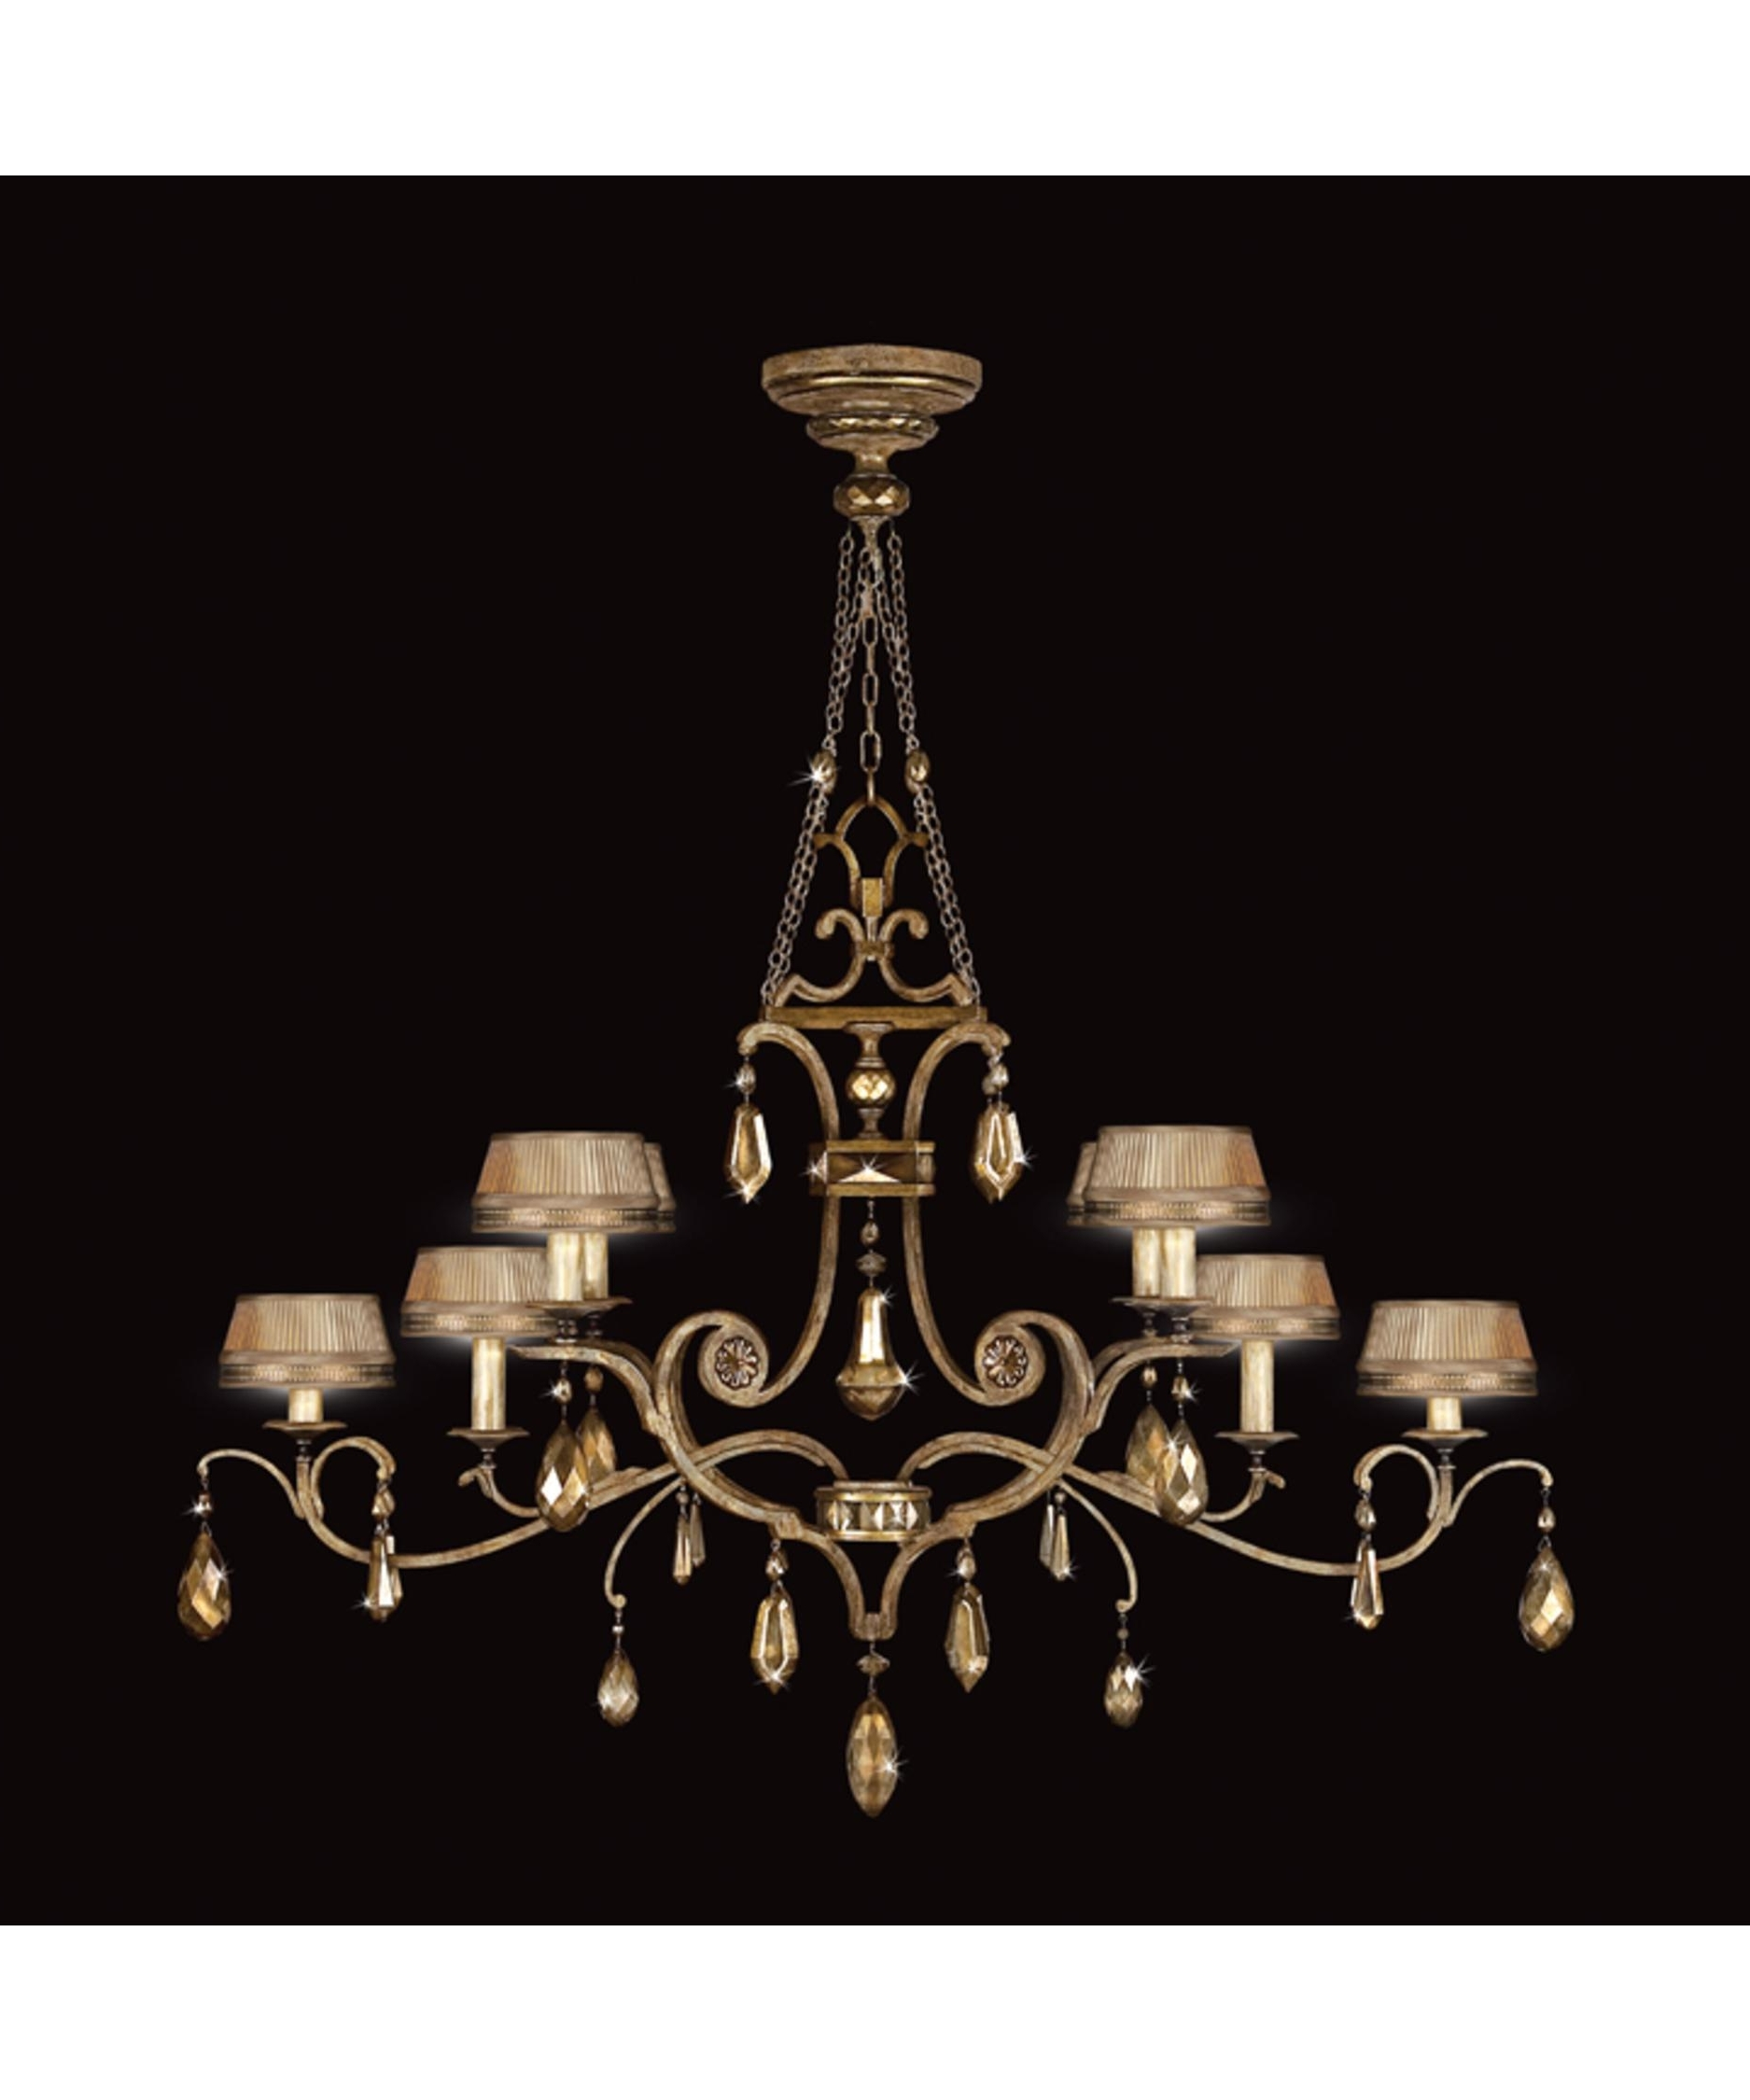 Fine Art Lamps 755440 Golden Aura 63 Inch Wide 8 Light Chandelier Pertaining To Well Liked Chandelier Wall Lights (View 14 of 20)